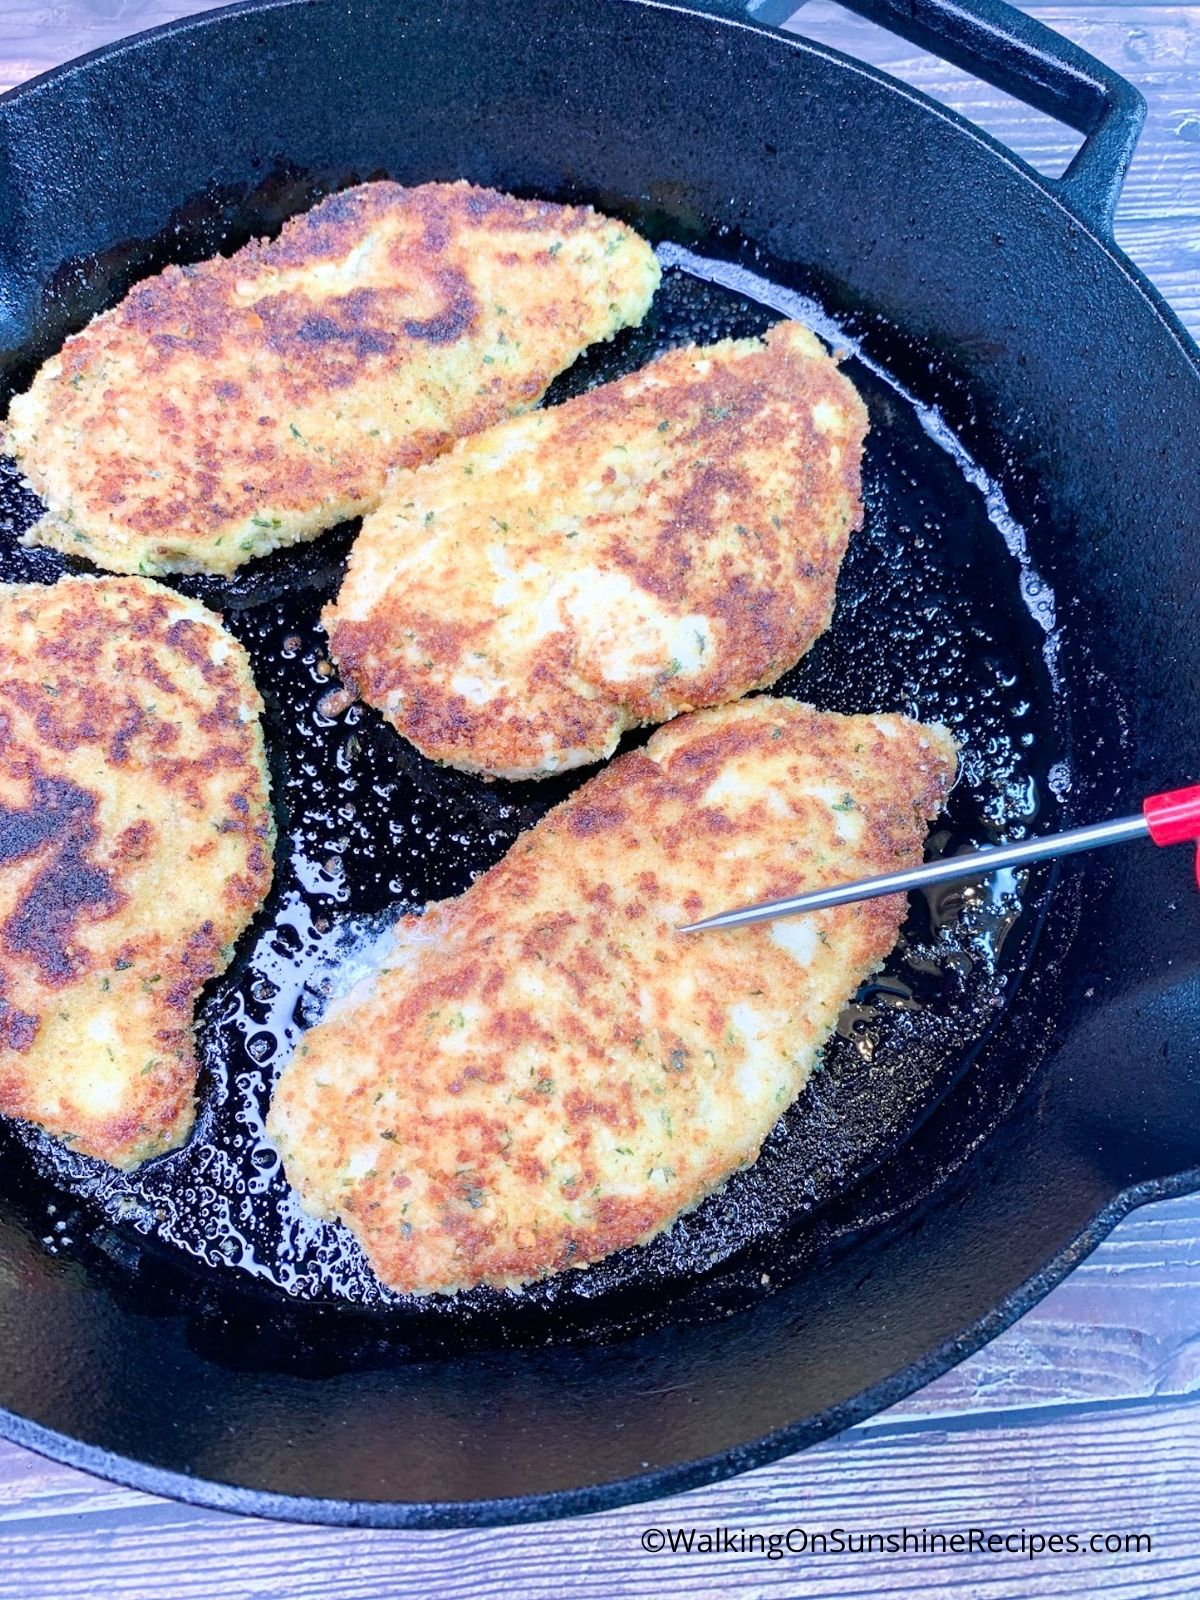 Test chicken cutlets with instant read thermometer to ensure internal temperature at 165.